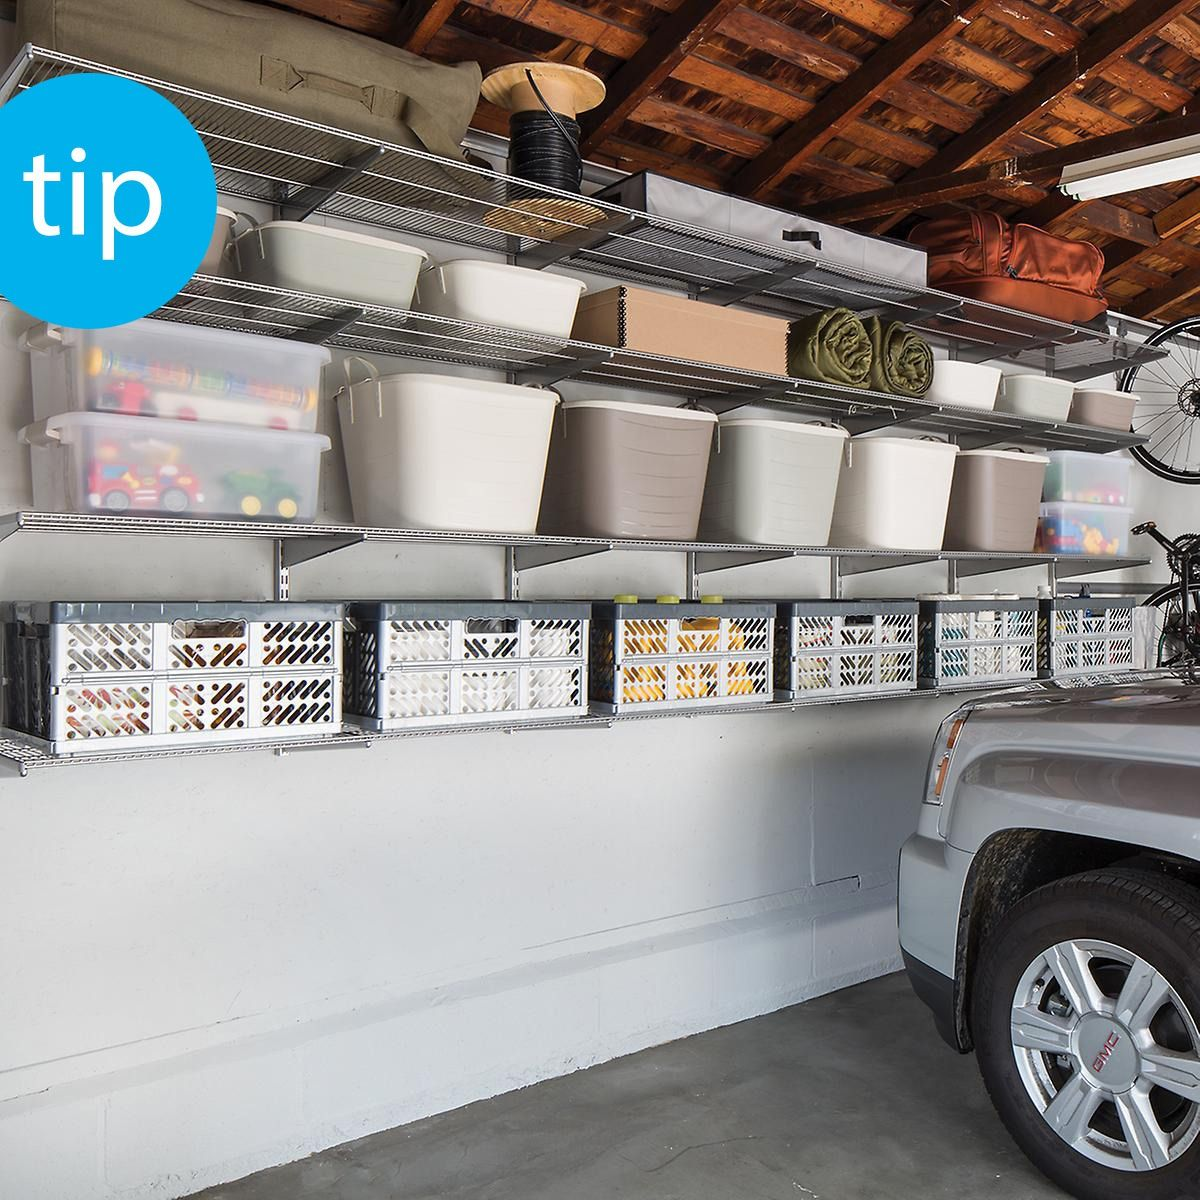 Garage Shelving Made Easy With A Few Of Our Helpful Tips Got A Two Car Garage But Only E Garage Shelving Garage Storage Organization Garage Organization Diy